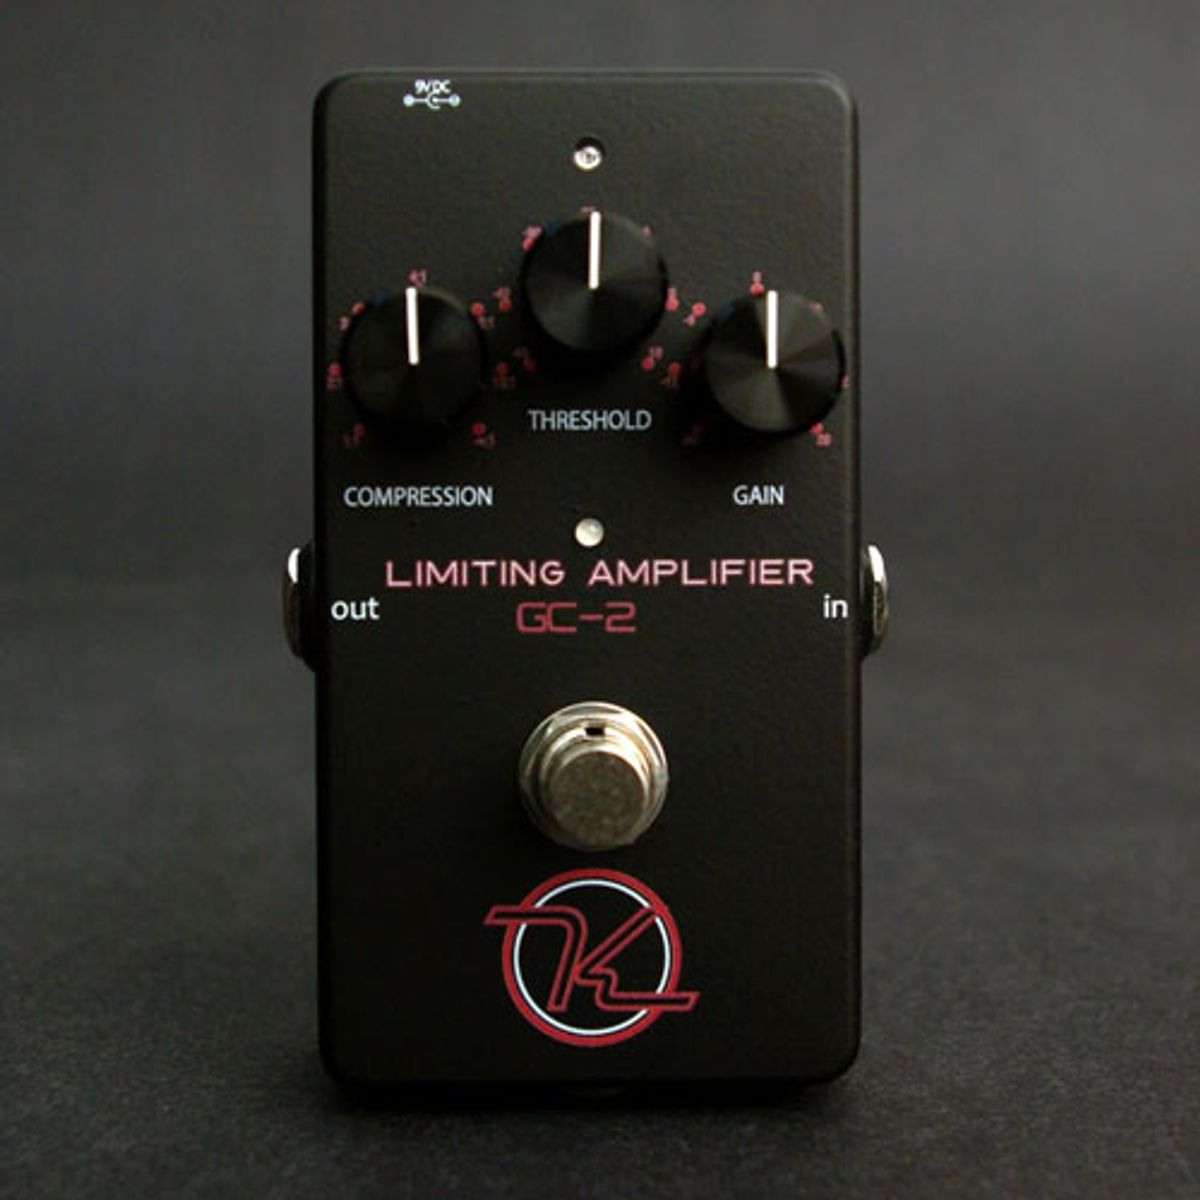 Keeley Introduces the GC-2 Limiting Amplifier